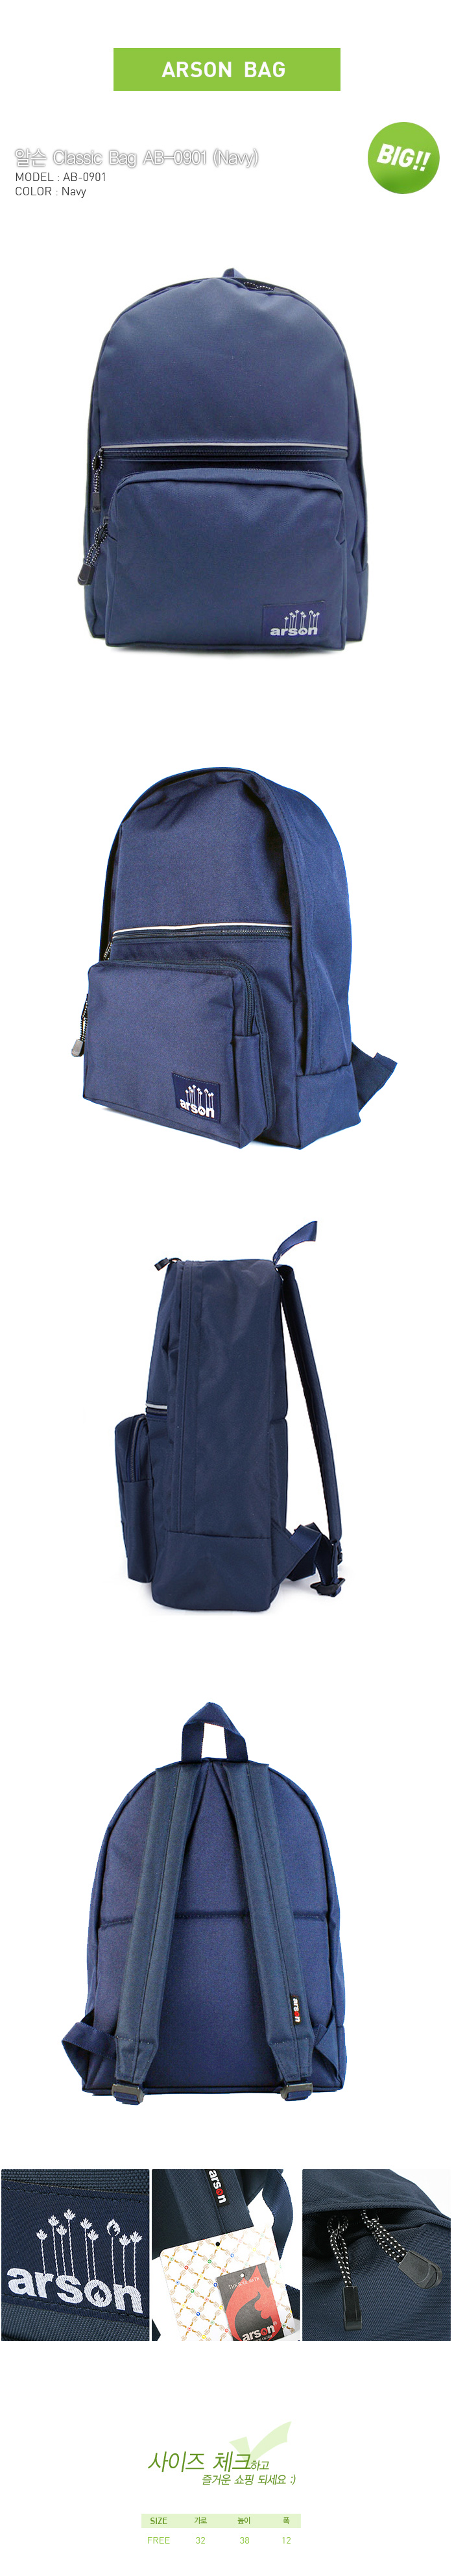 [ ARSON ] AB-0901 (Navy)/Backpack School Bag